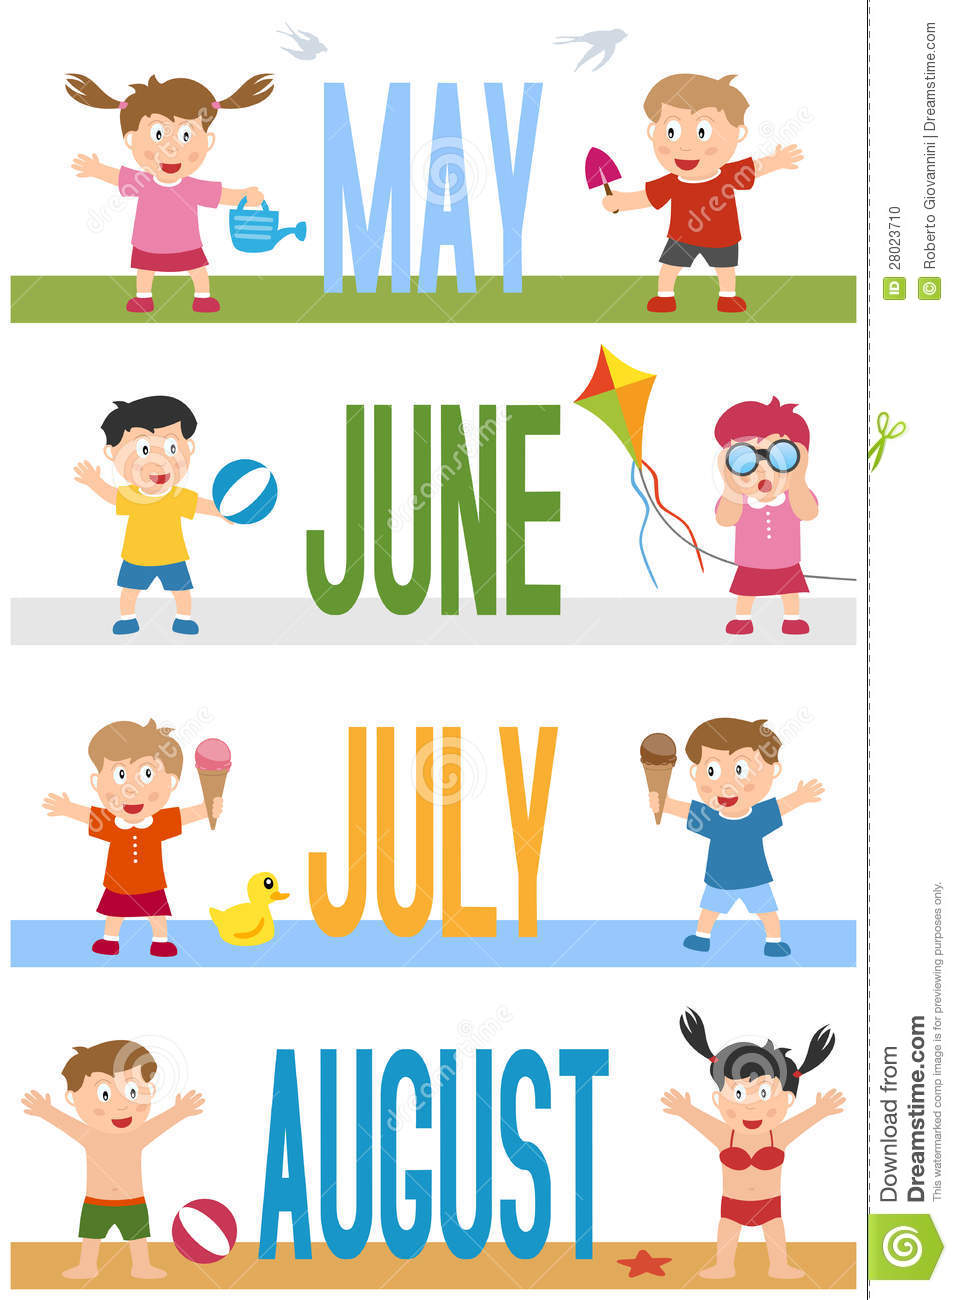 Month Of July Clipart Months Banners With Kids